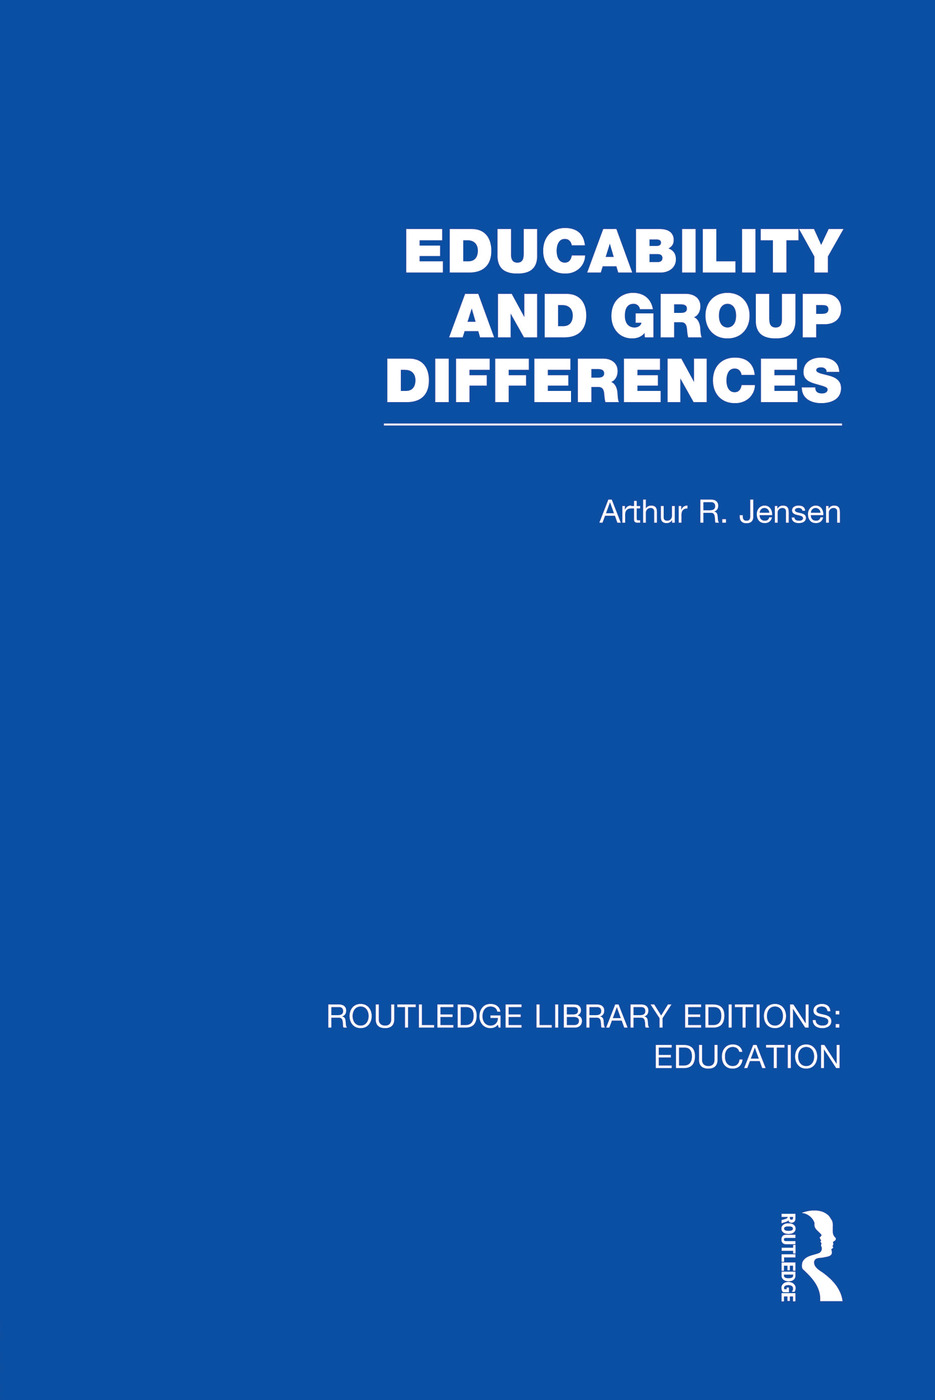 Educability and Group Differences